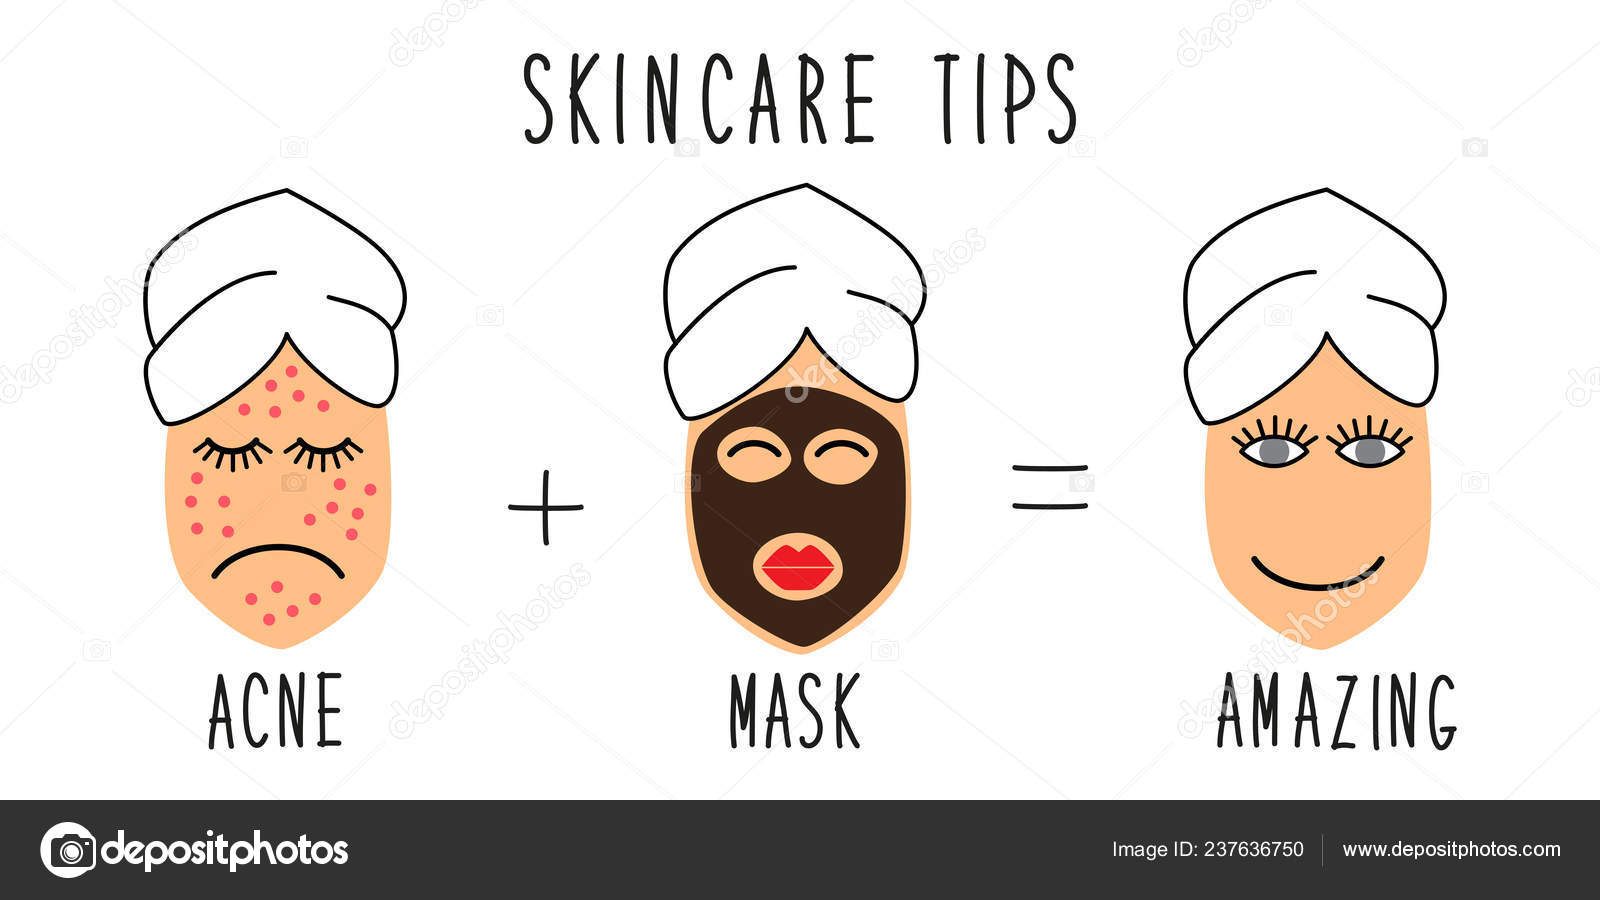 Cute And Simple Skincare Tips For Acne Treatment Stock Vector C Ishkrabal 237636750